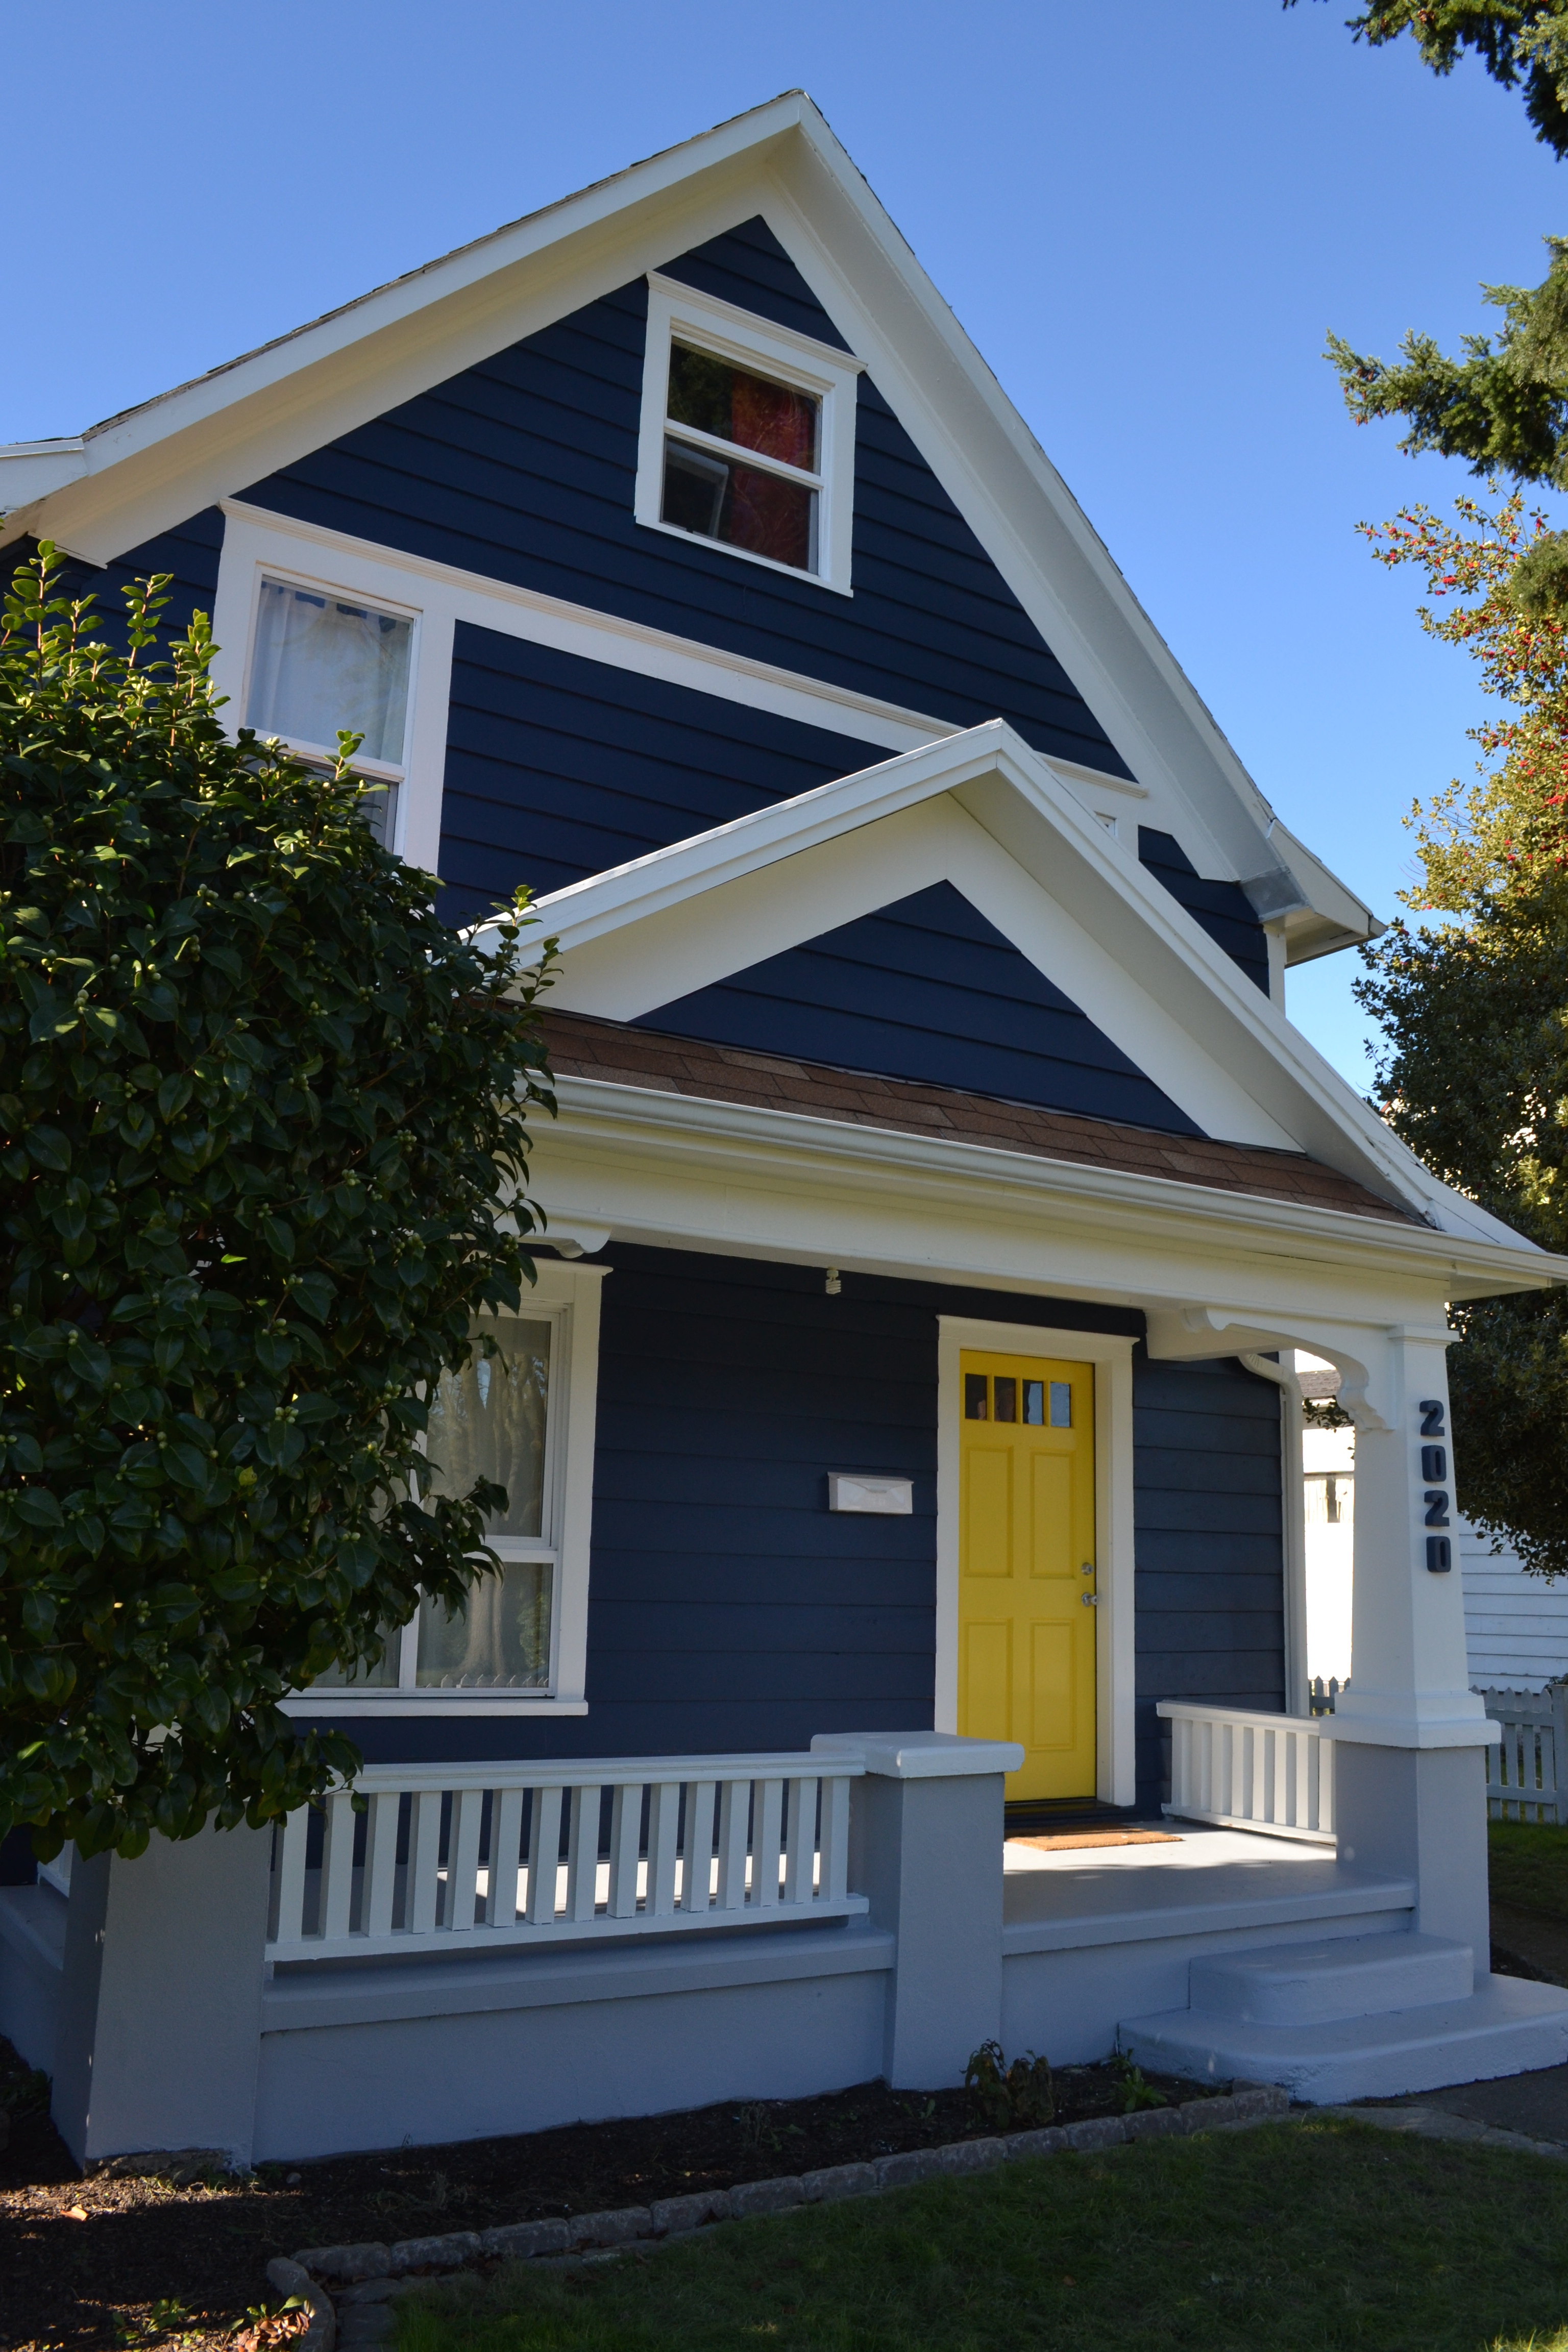 Navy house confessions of a type b mama - Houses with white trim ...